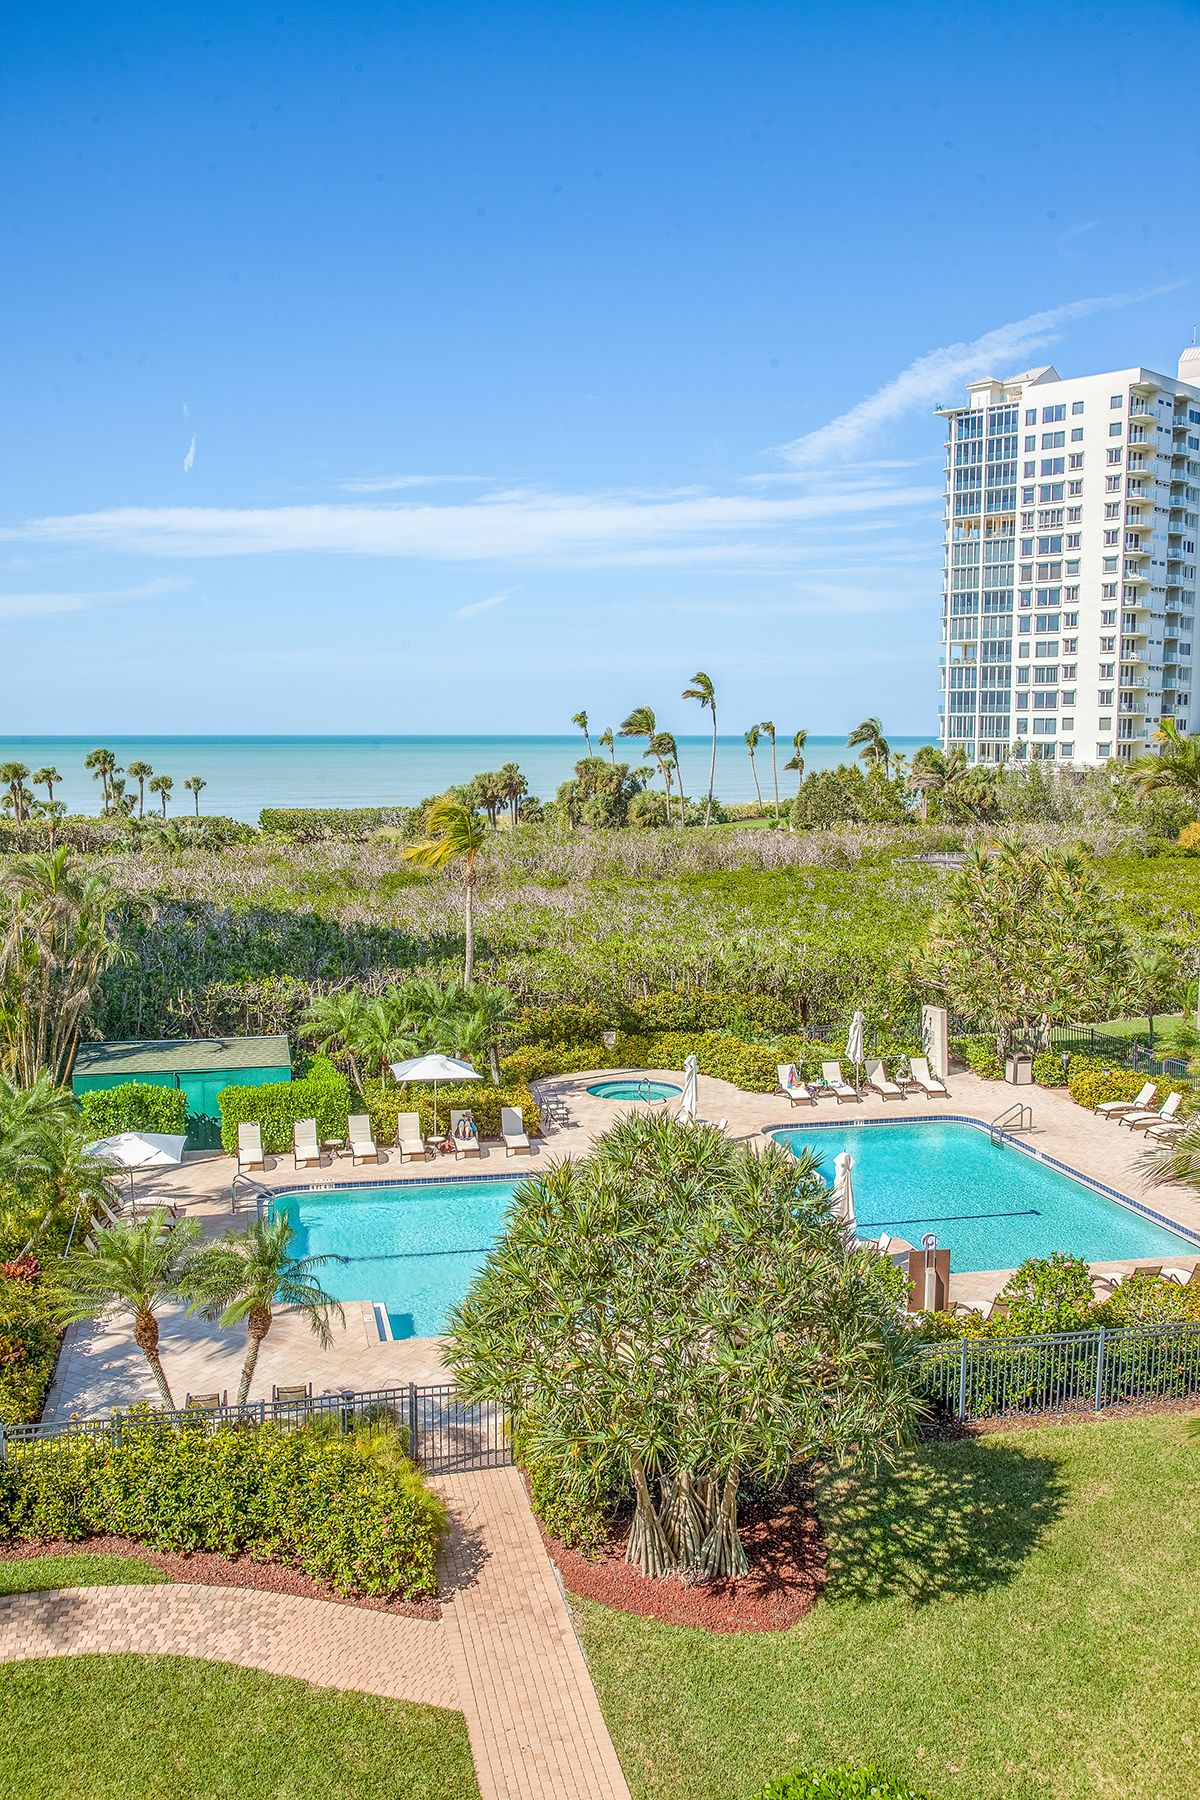 Additional photo for property listing at CLUB AT NAPLES CAY 40  Seagate Dr 202,  Naples, Florida 34103 United States